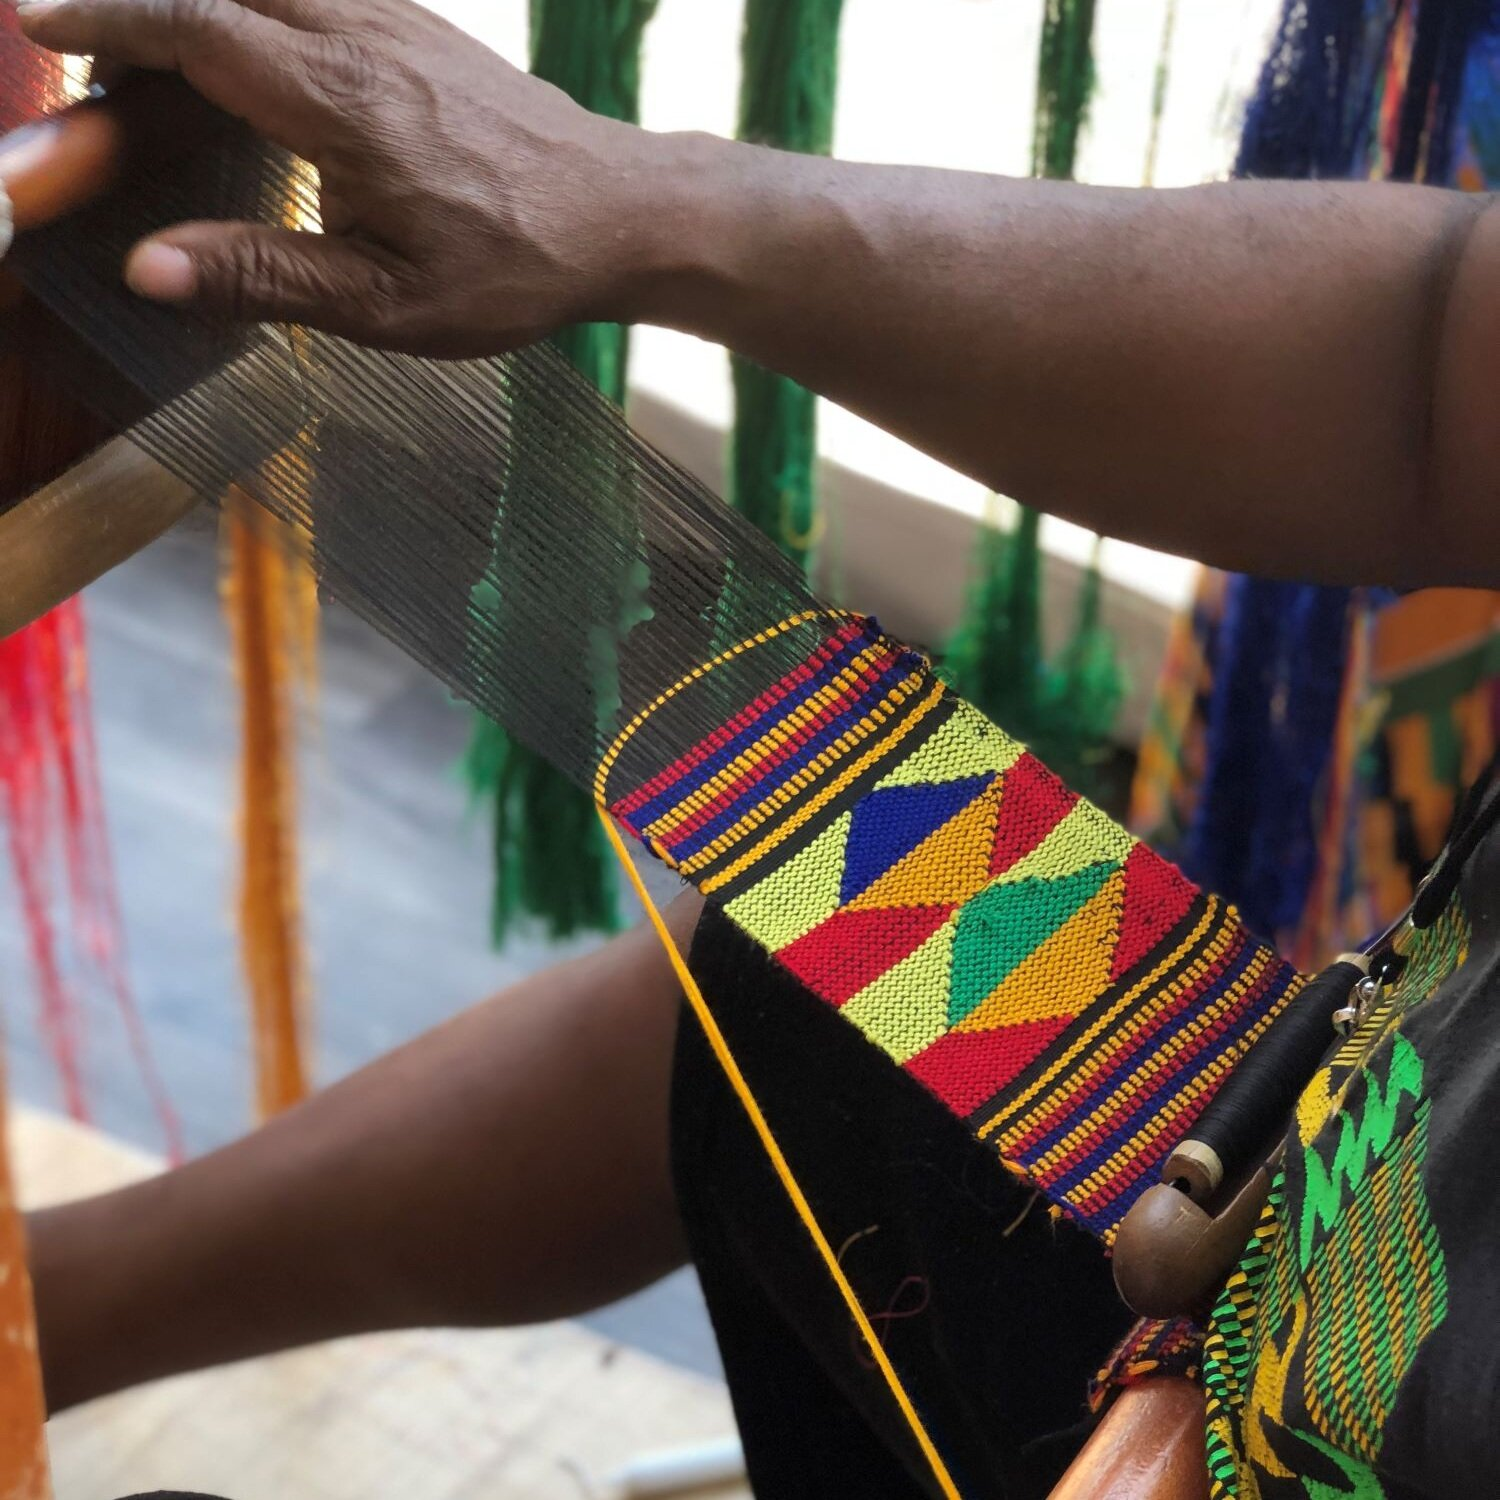 kente-weaving-close-up.jpg